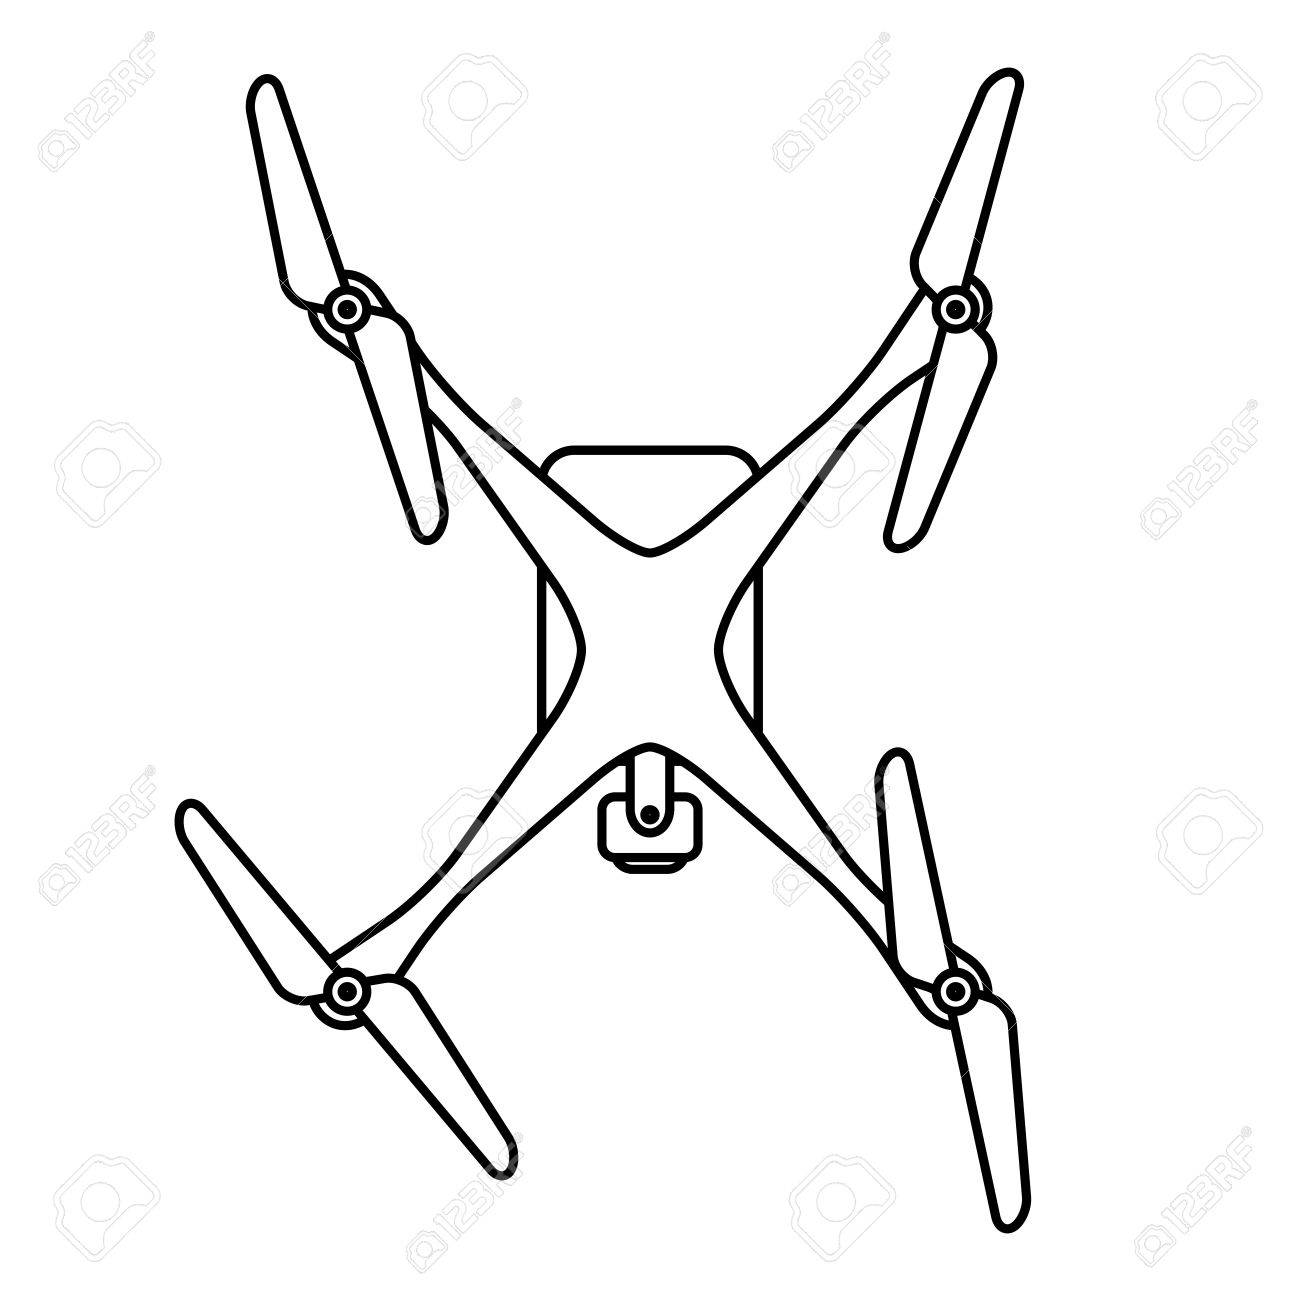 Modern Quadcopter Drone With Camera Top View Thin Line Linear Illustration Stock Vector